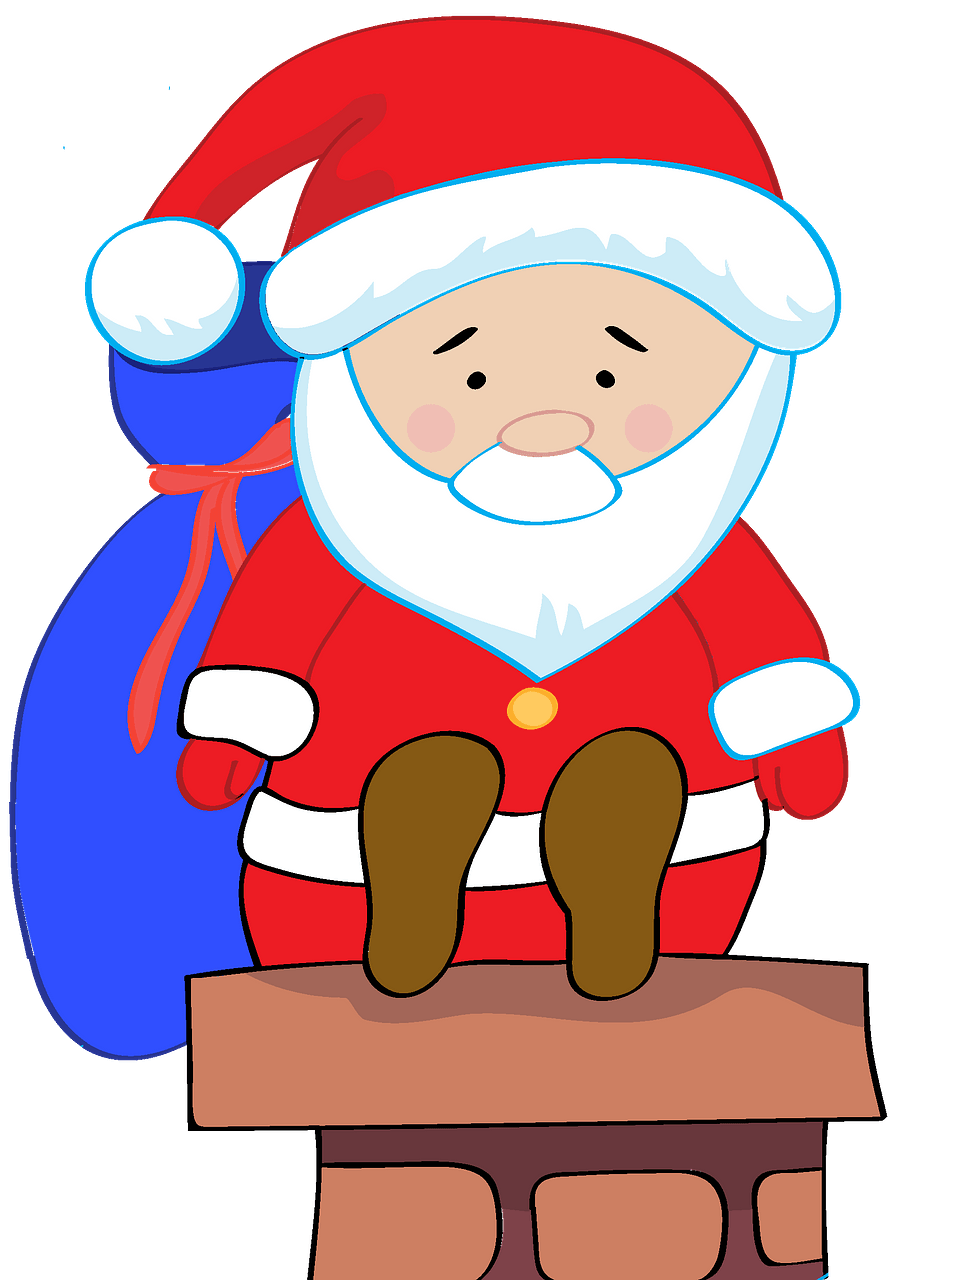 Santa Claus on a chimney clipart. Free download..